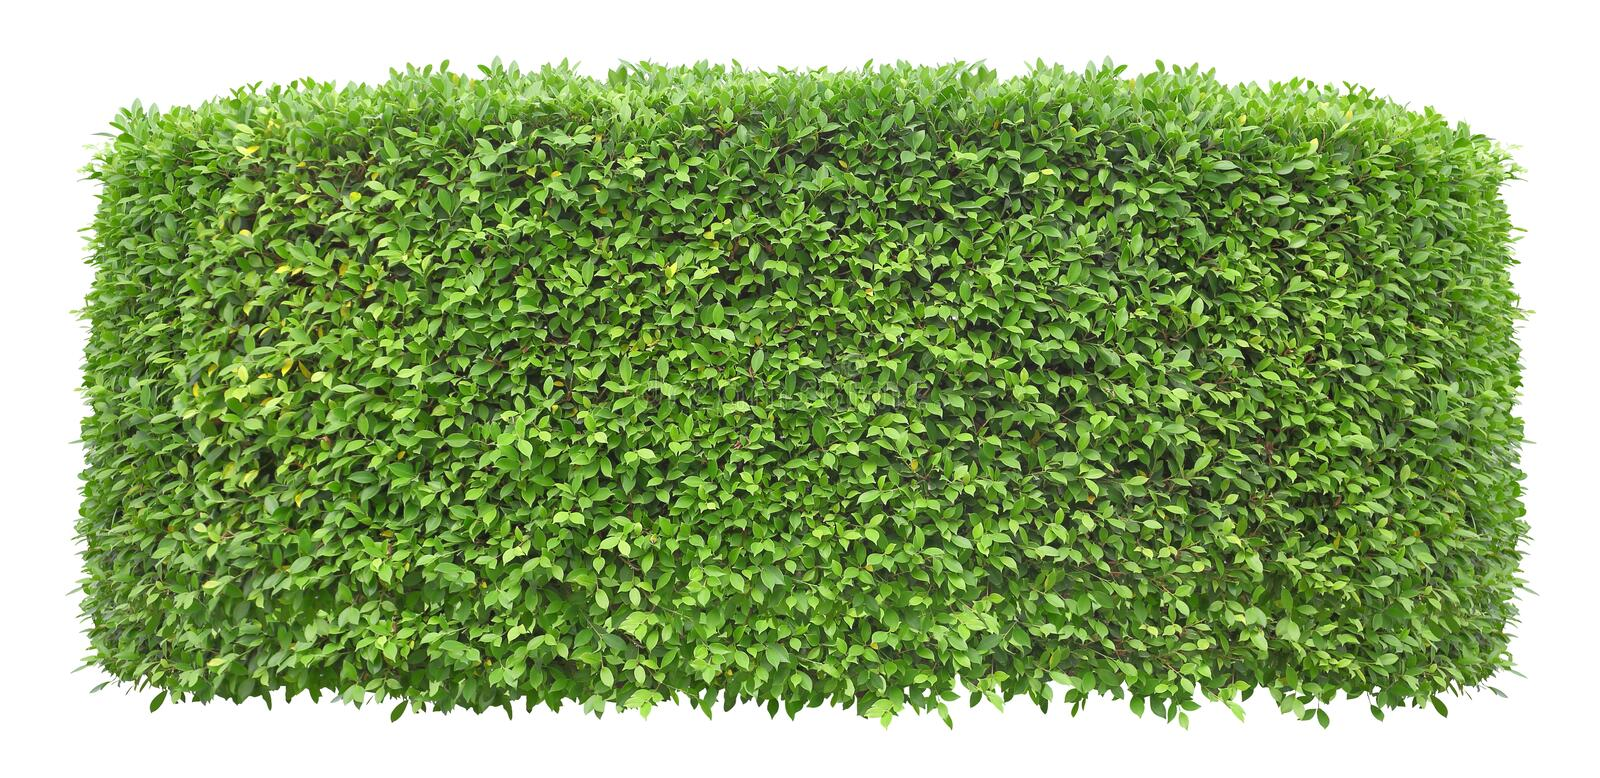 Trimmed green hedge wall isolated on white background for exterior and garden design. Trimmed green hedge wall isolated on white background for outdoor garden royalty free stock photo